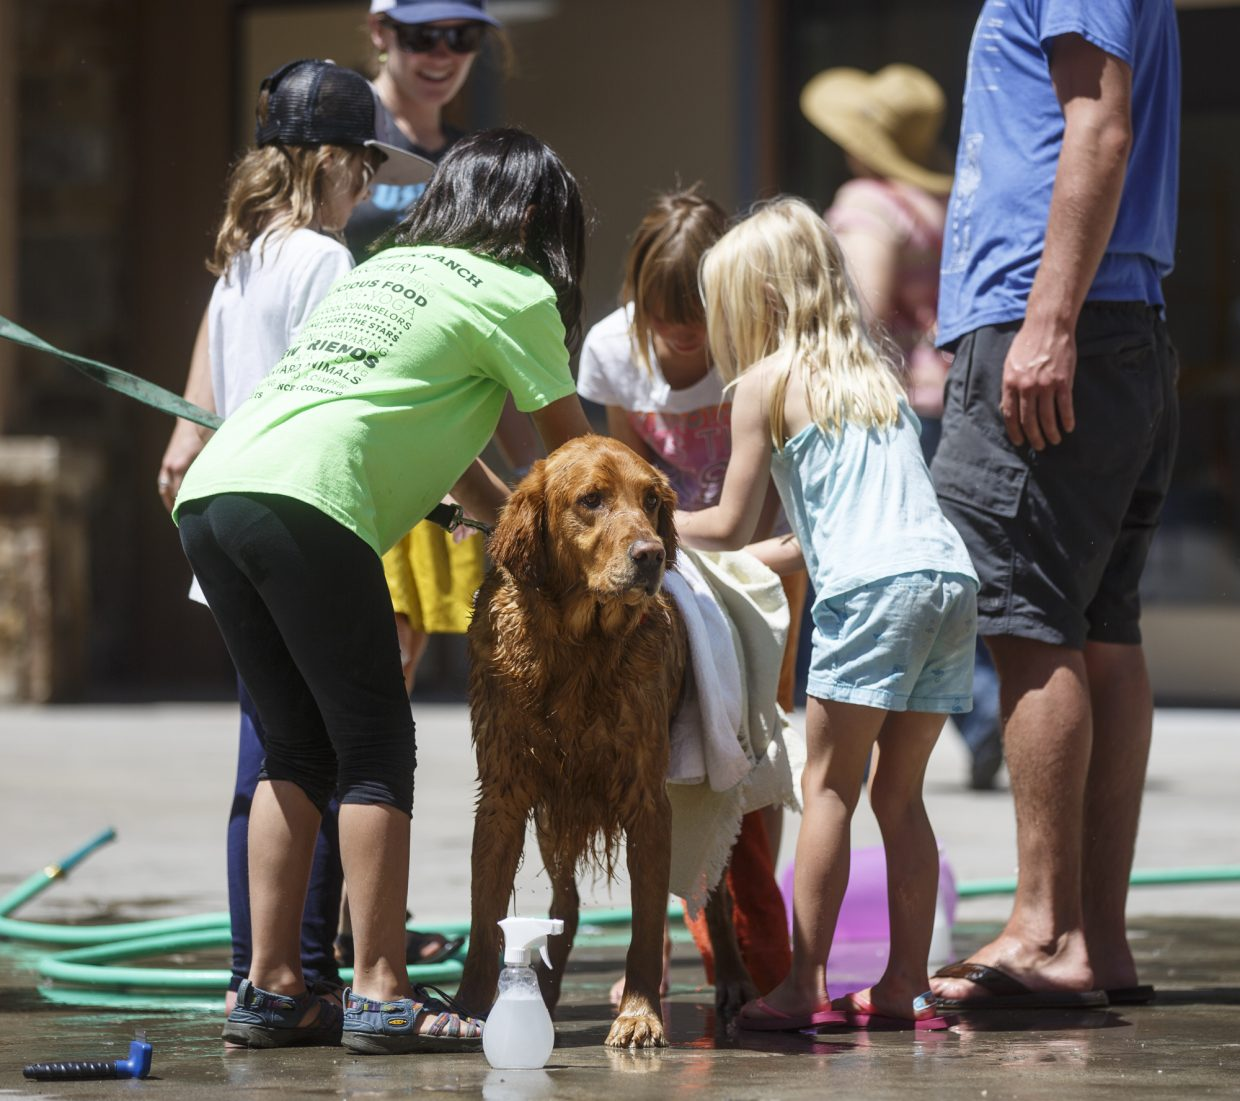 Mountain Top Camp students and employees wash a dog during a fundraiser Wednesday, July 19, at the Main Street Station in Breckenridge.